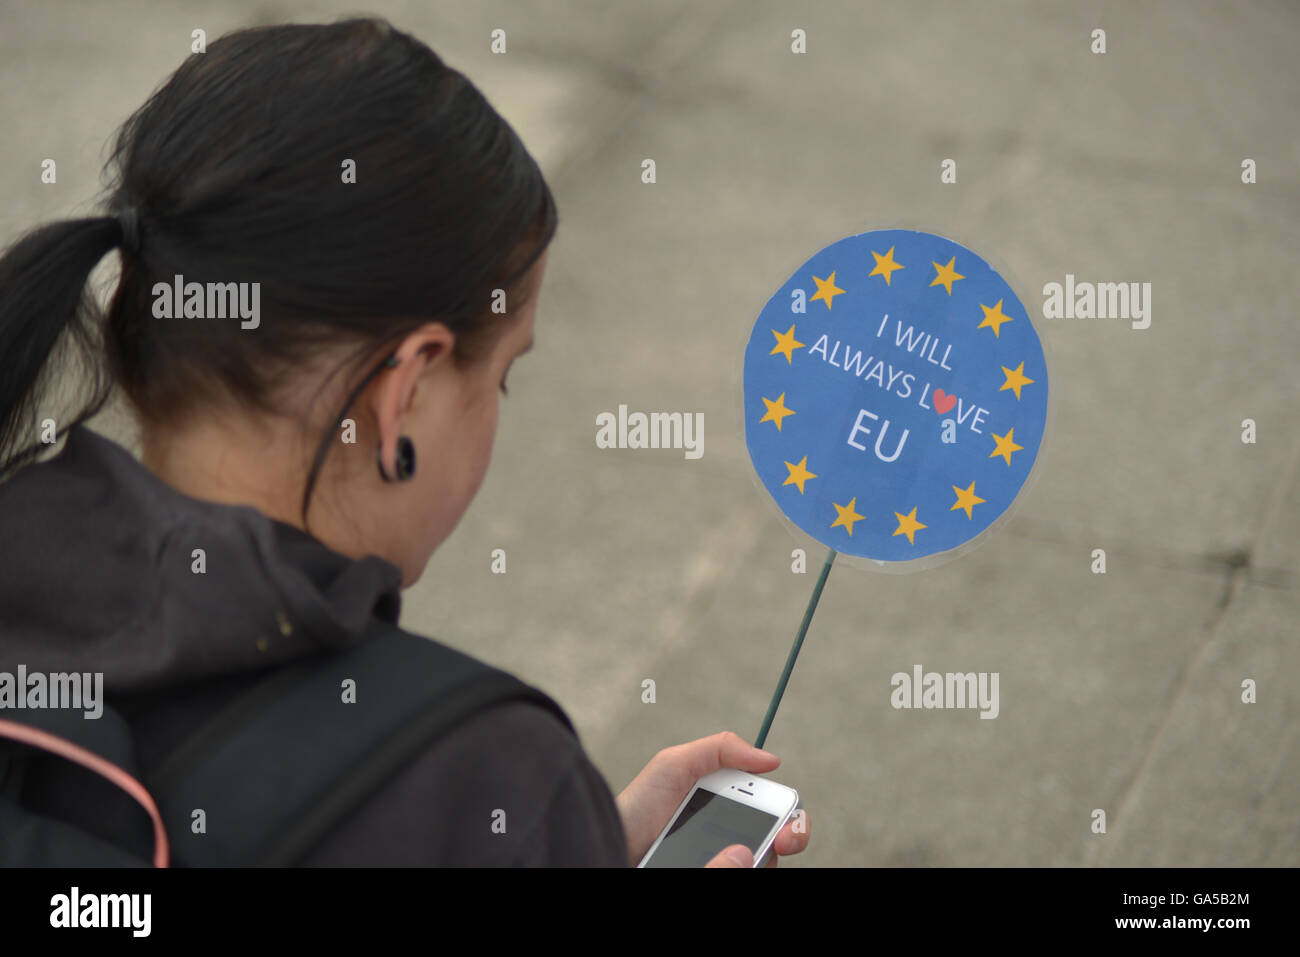 Manchester, UK. 02nd July, 2016. A person attending the 'Undo Brexit' demonstration, to have the United Kingdom's Stock Photo